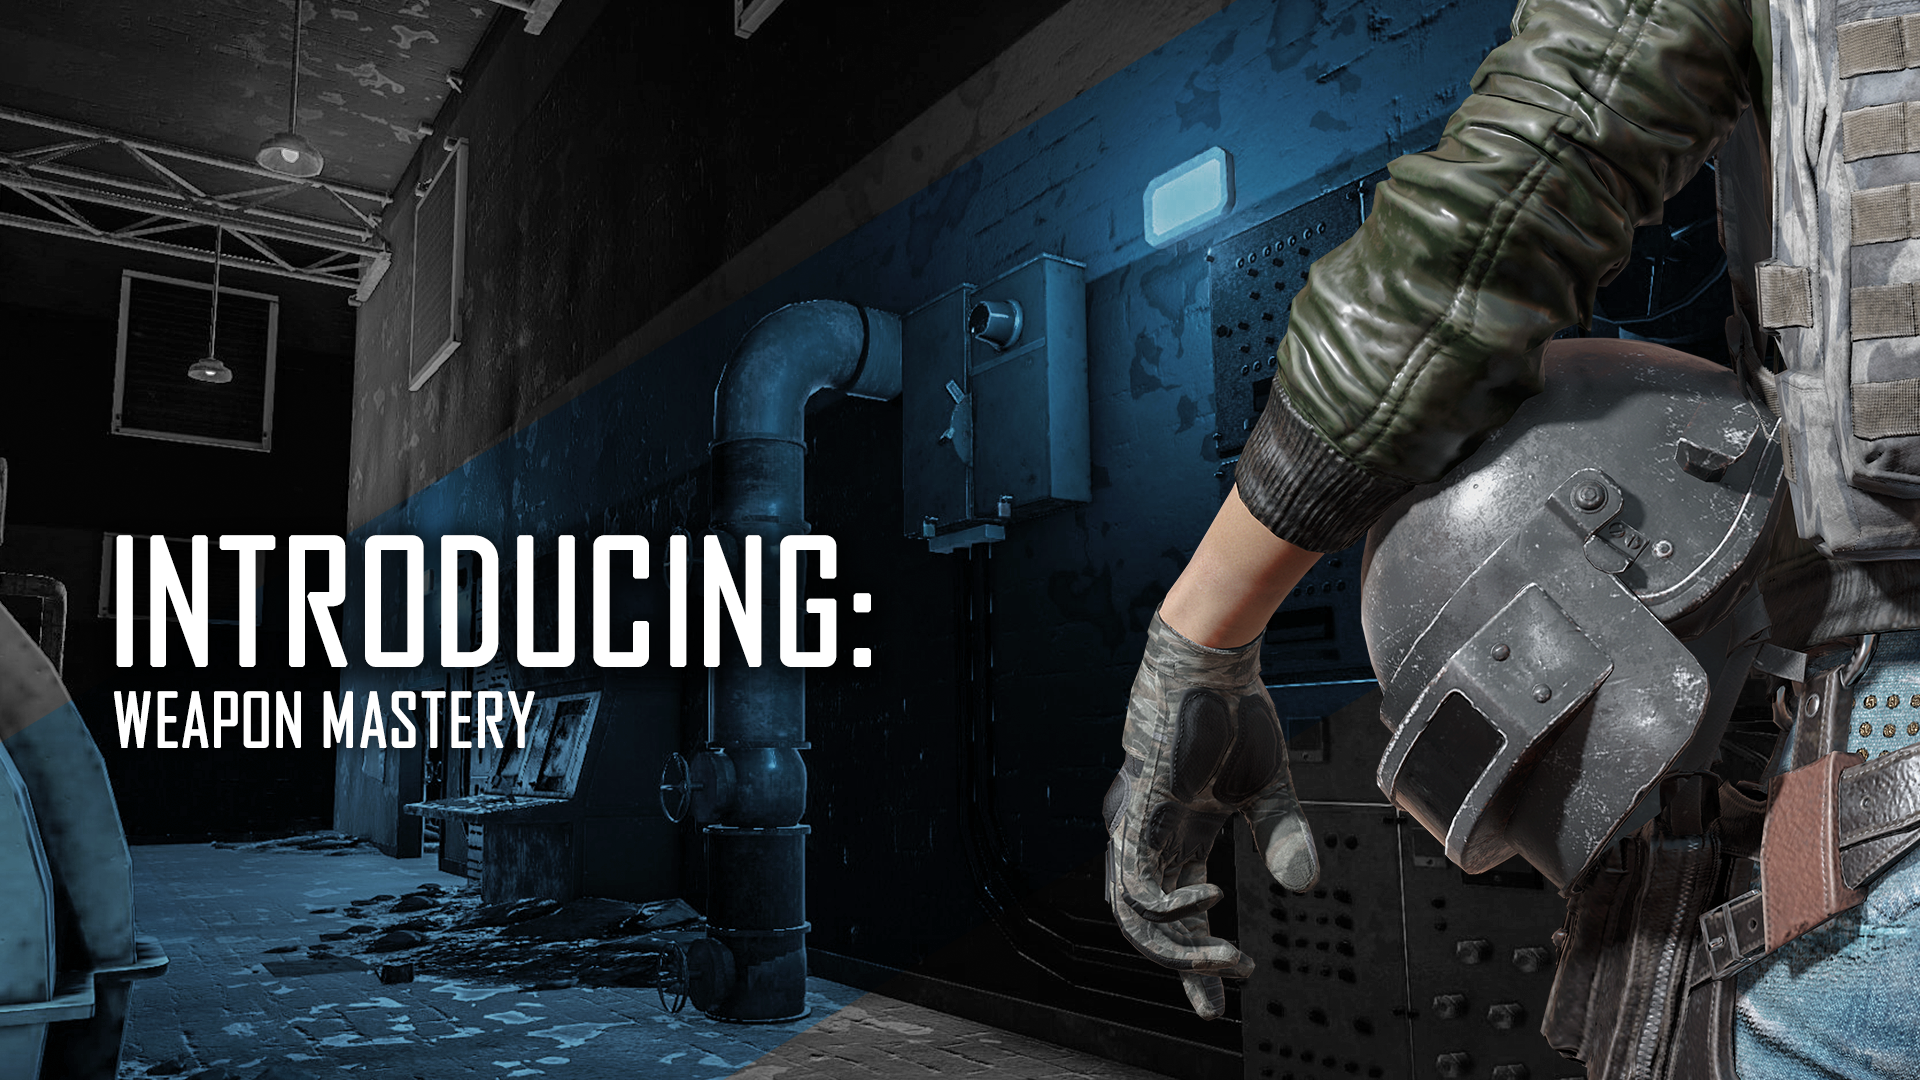 Late Last Year Pubg Corporation Formed A New Mastery Initiative Dedicated To Improving And Evolving How Progression Works On The Battlegrounds